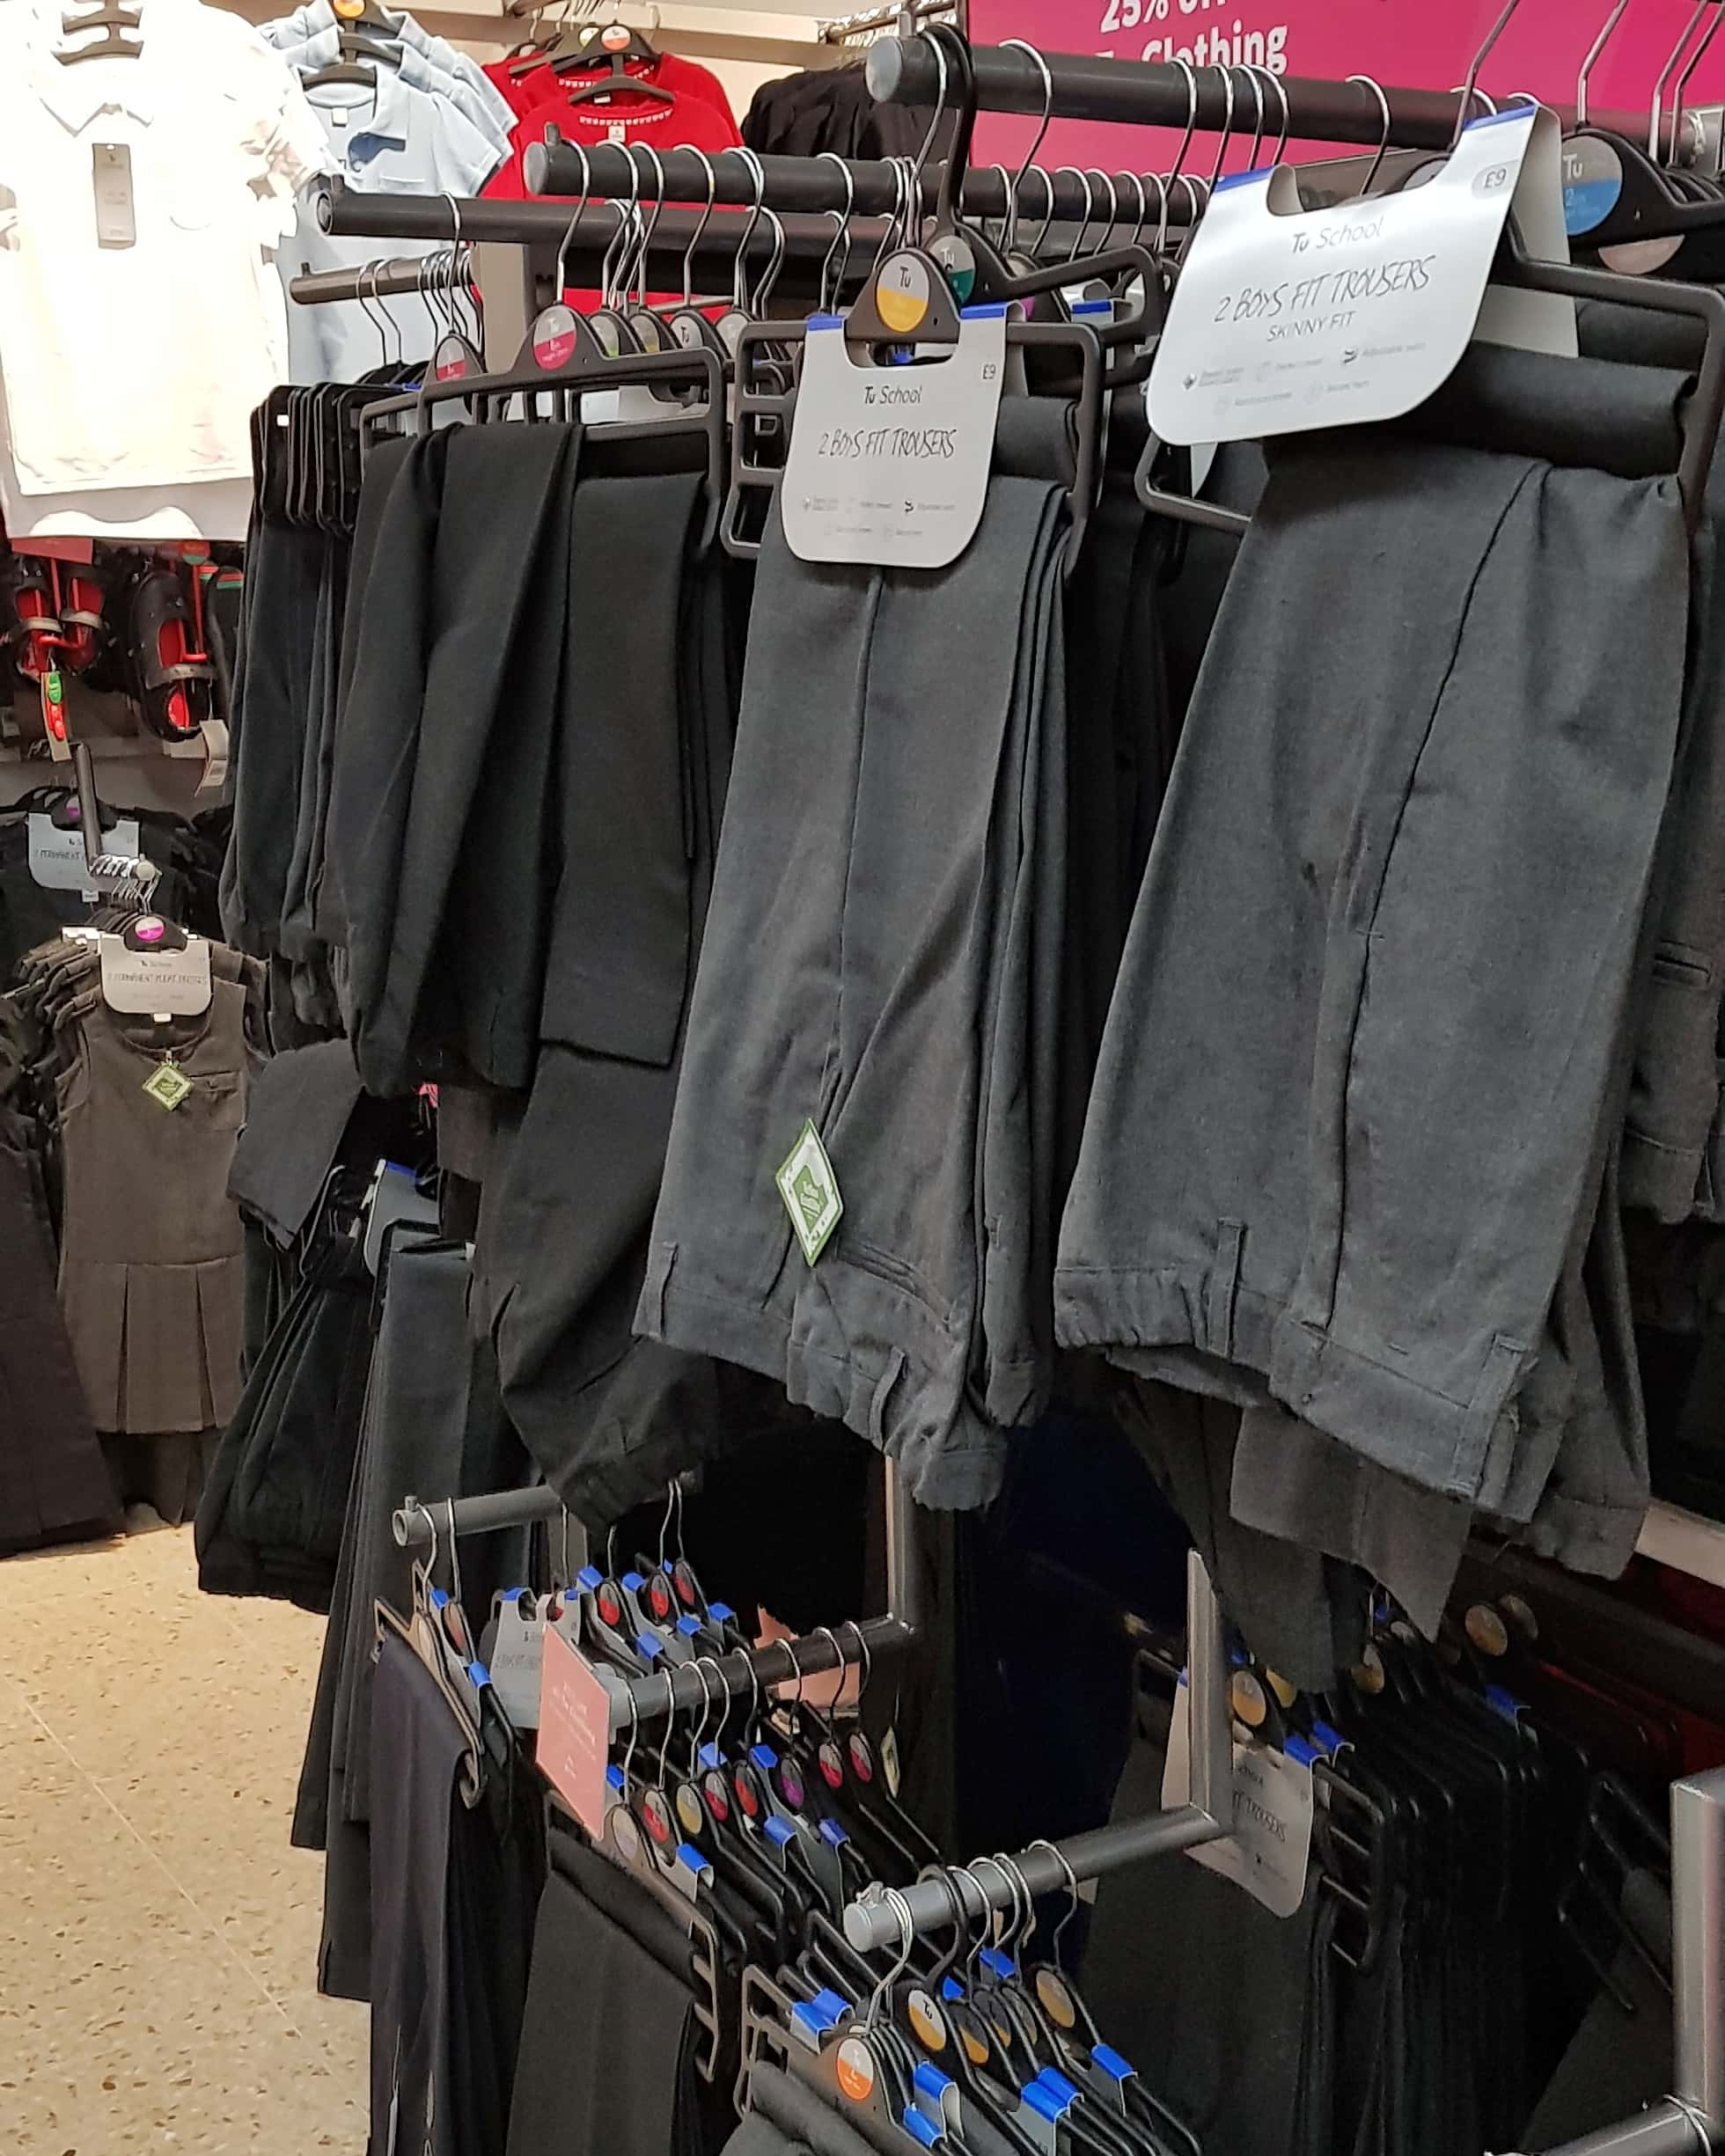 Sainsbury's uniform selection in the Gallagher Retail Park